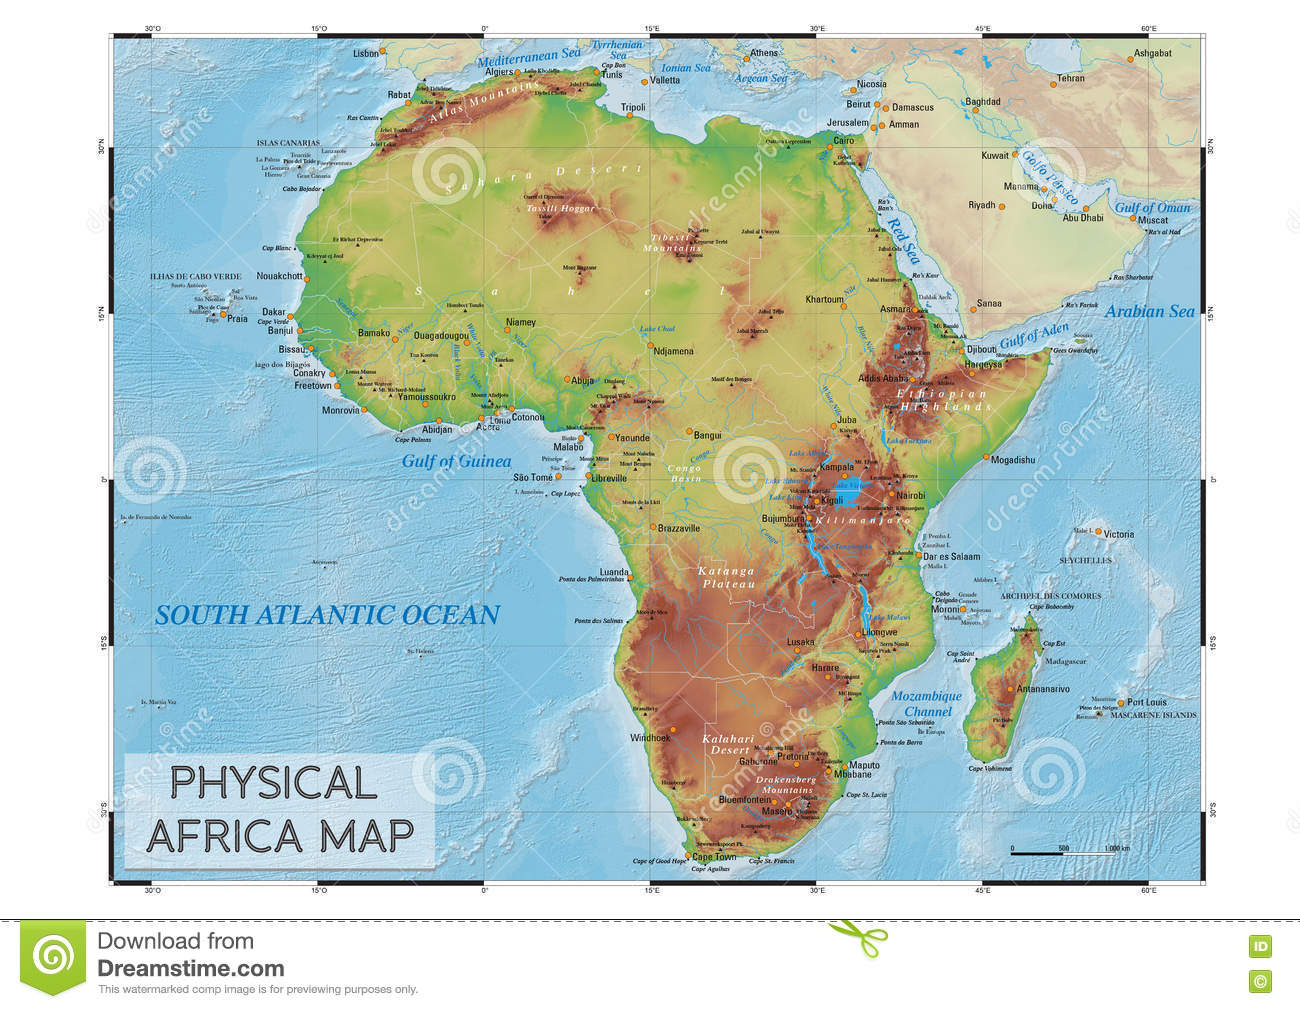 Physical Africa map stock vector. Illustration of mountains - 80884180